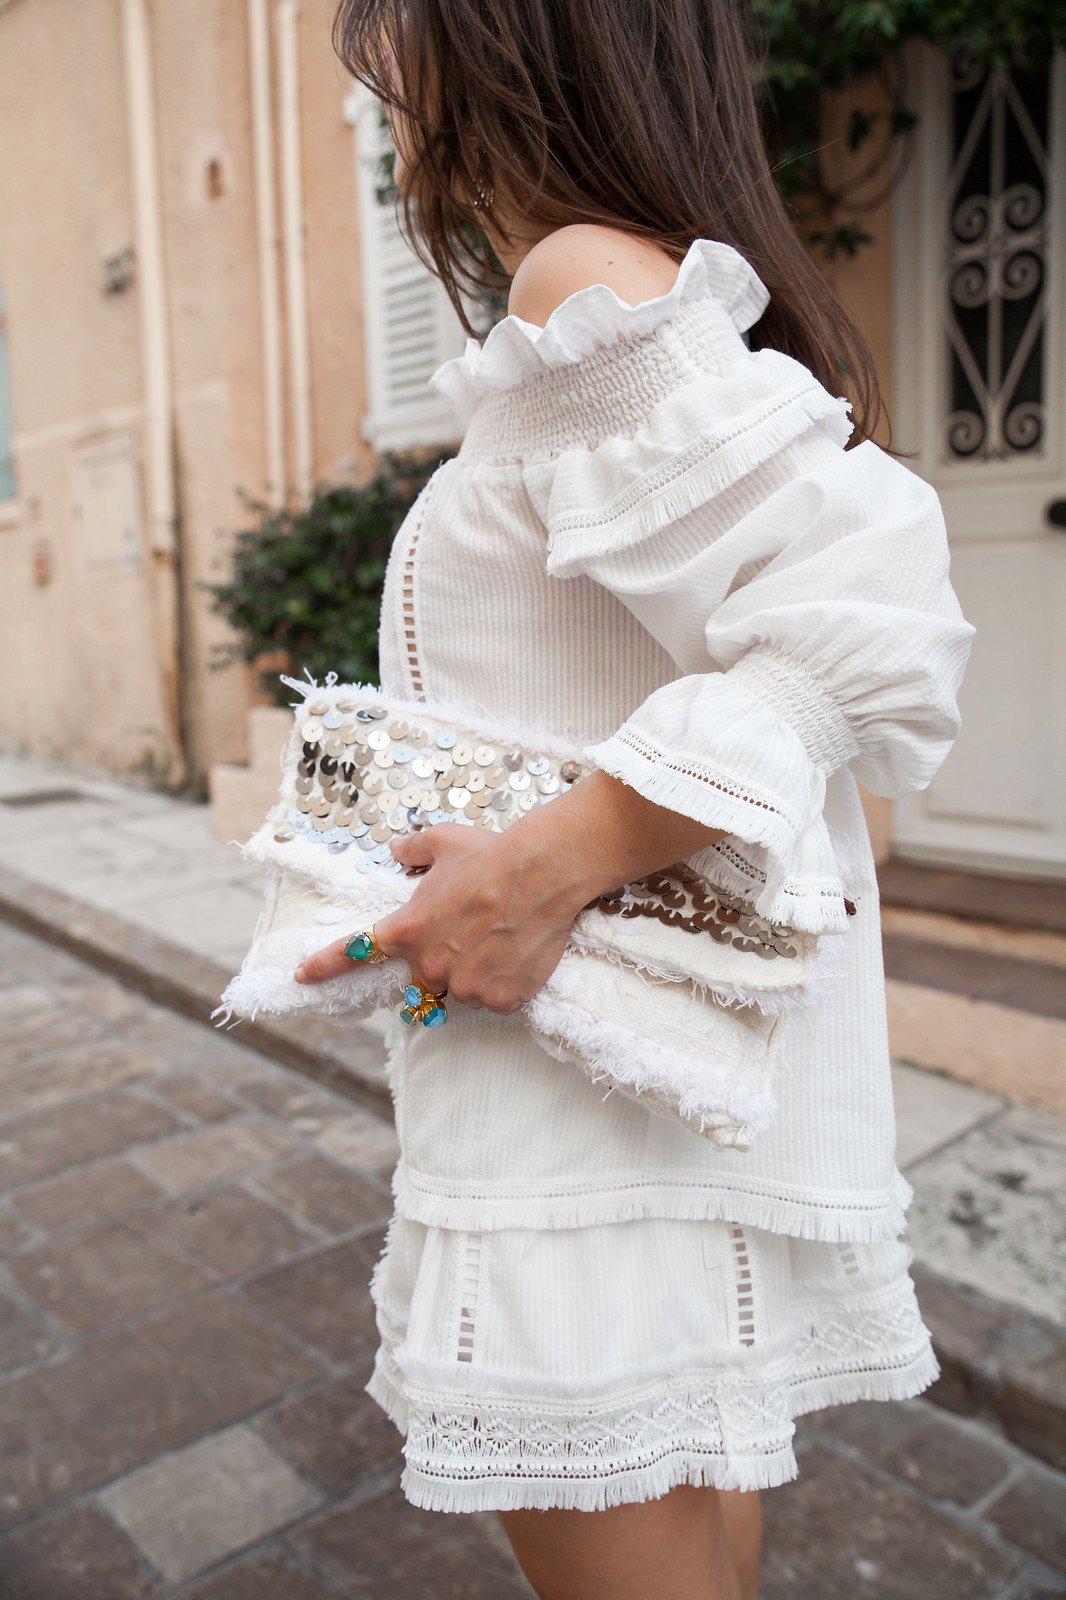 08_highly_preppy_theguestgirl_total_white_look_summer